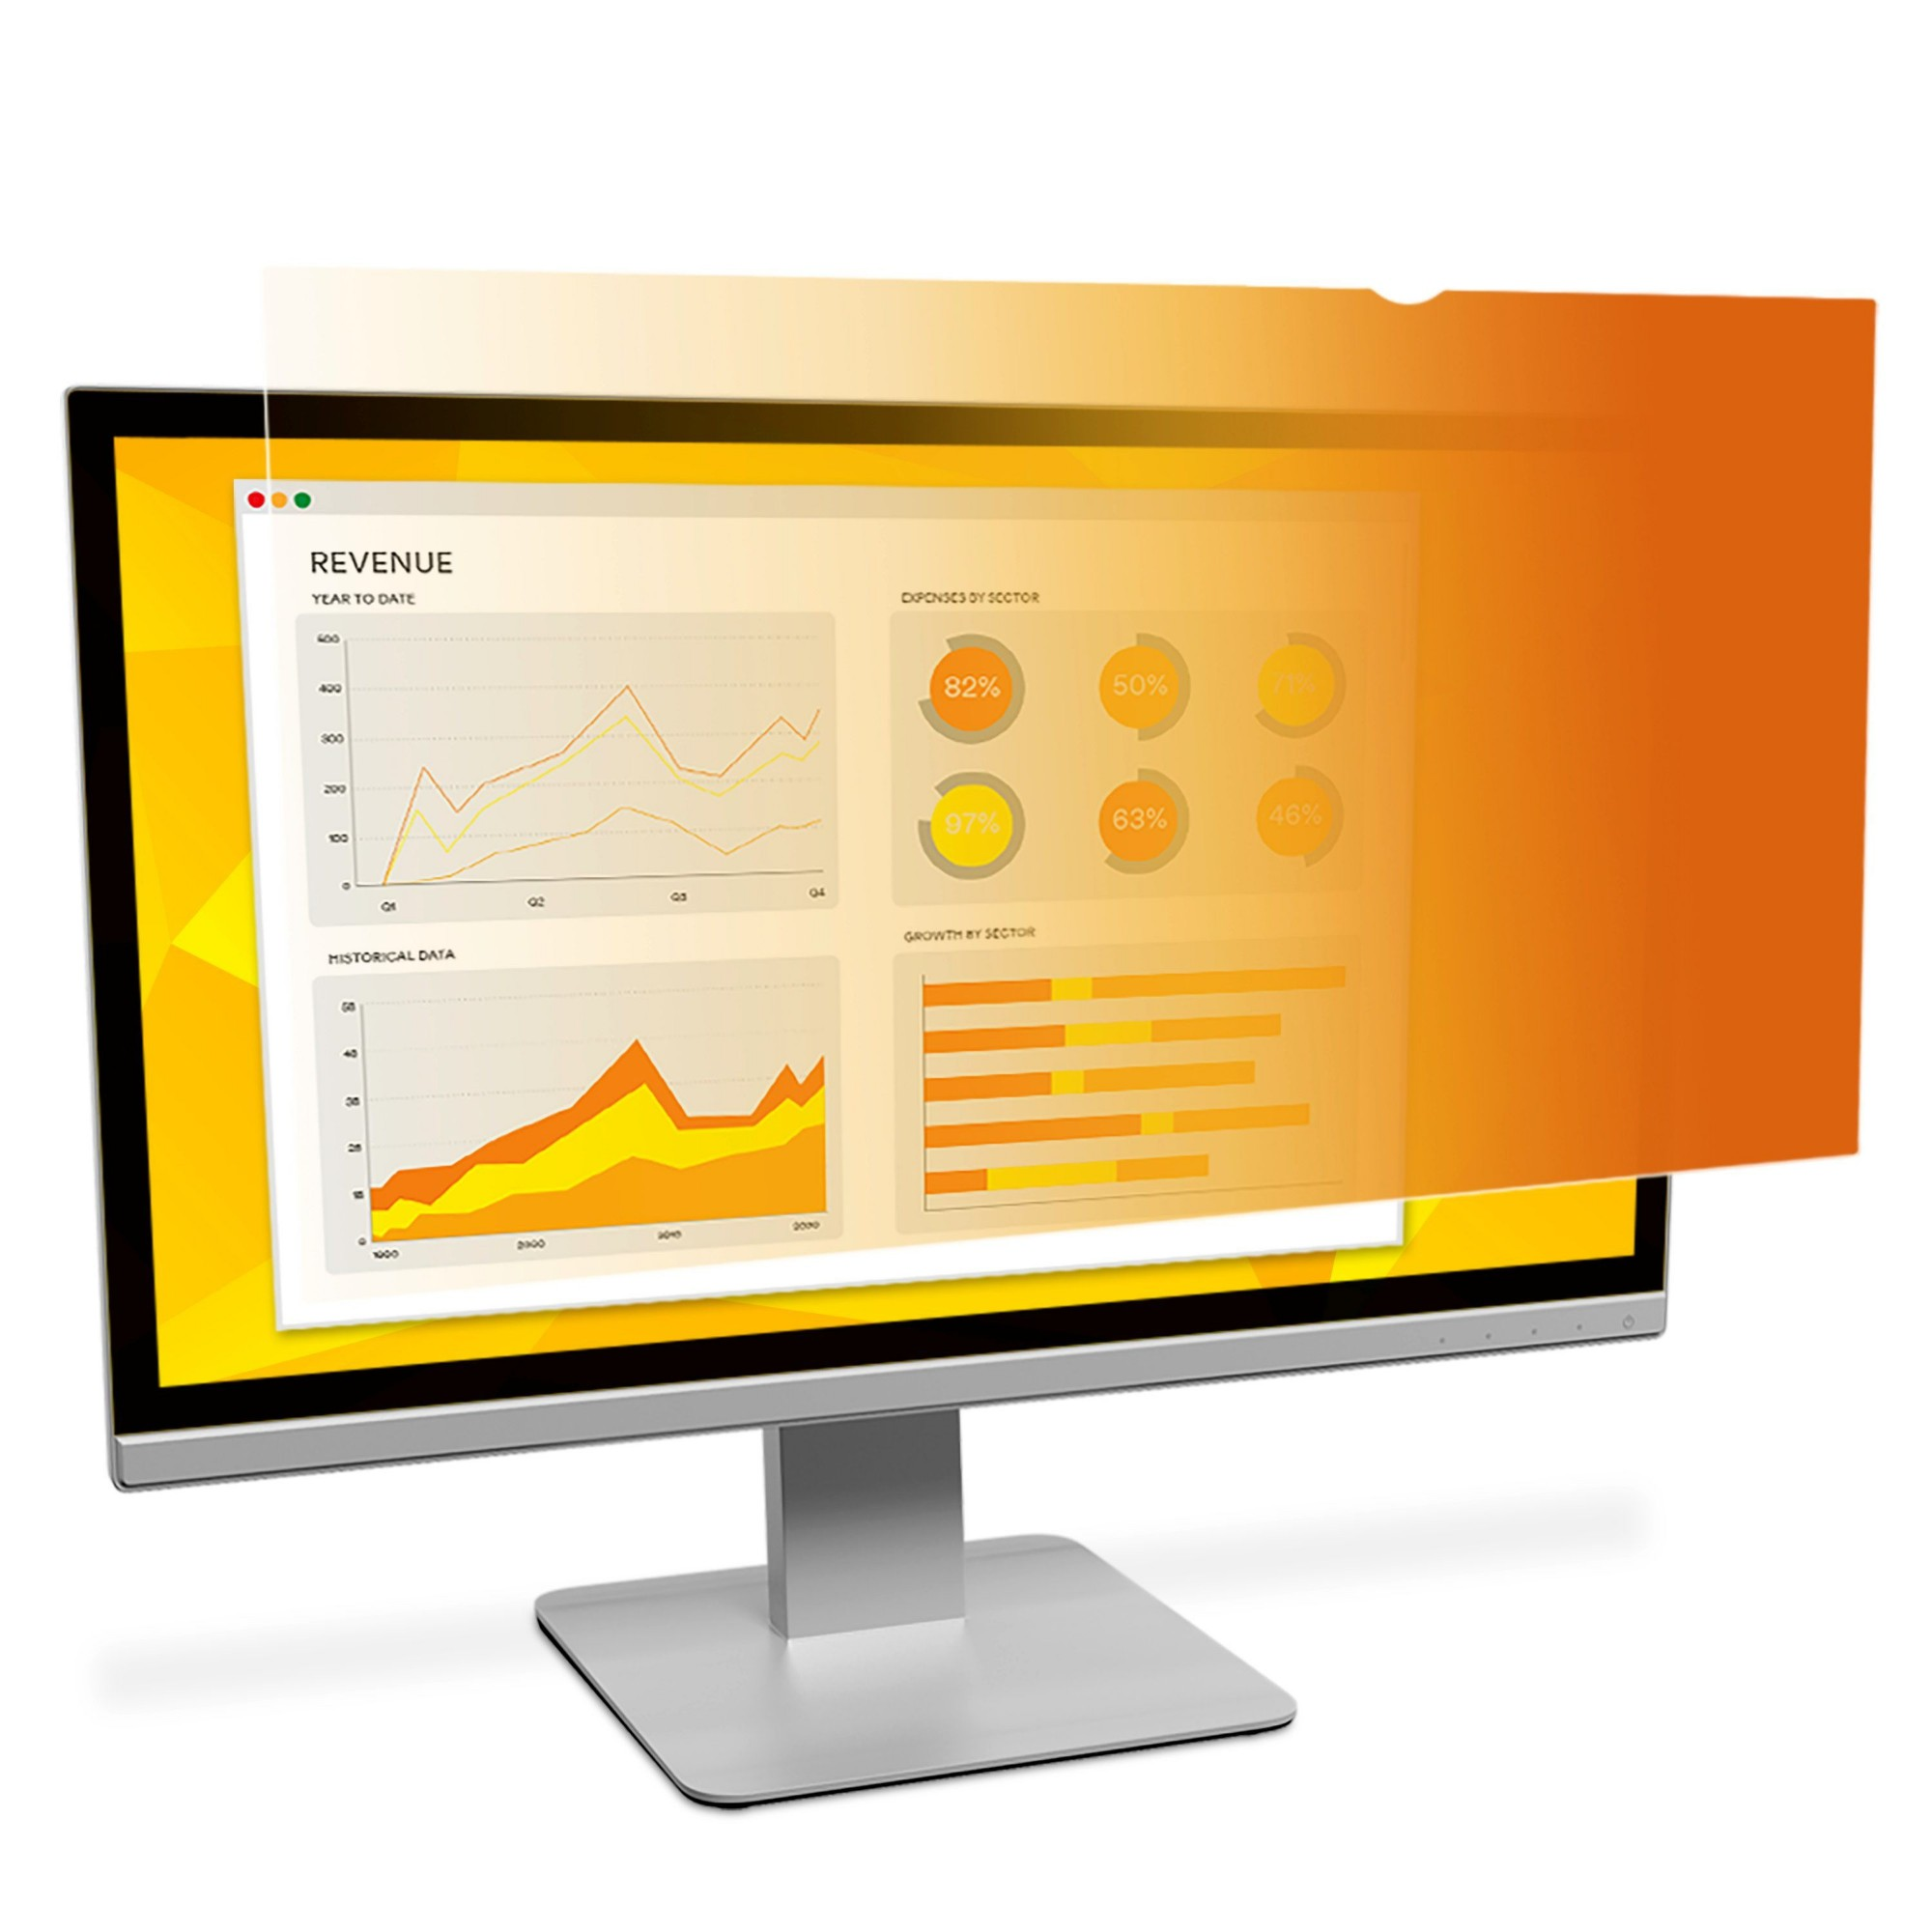 Gold Privacy Filter Gf240w1b - Display Privacy Filter - 21.5in Wide - Gold